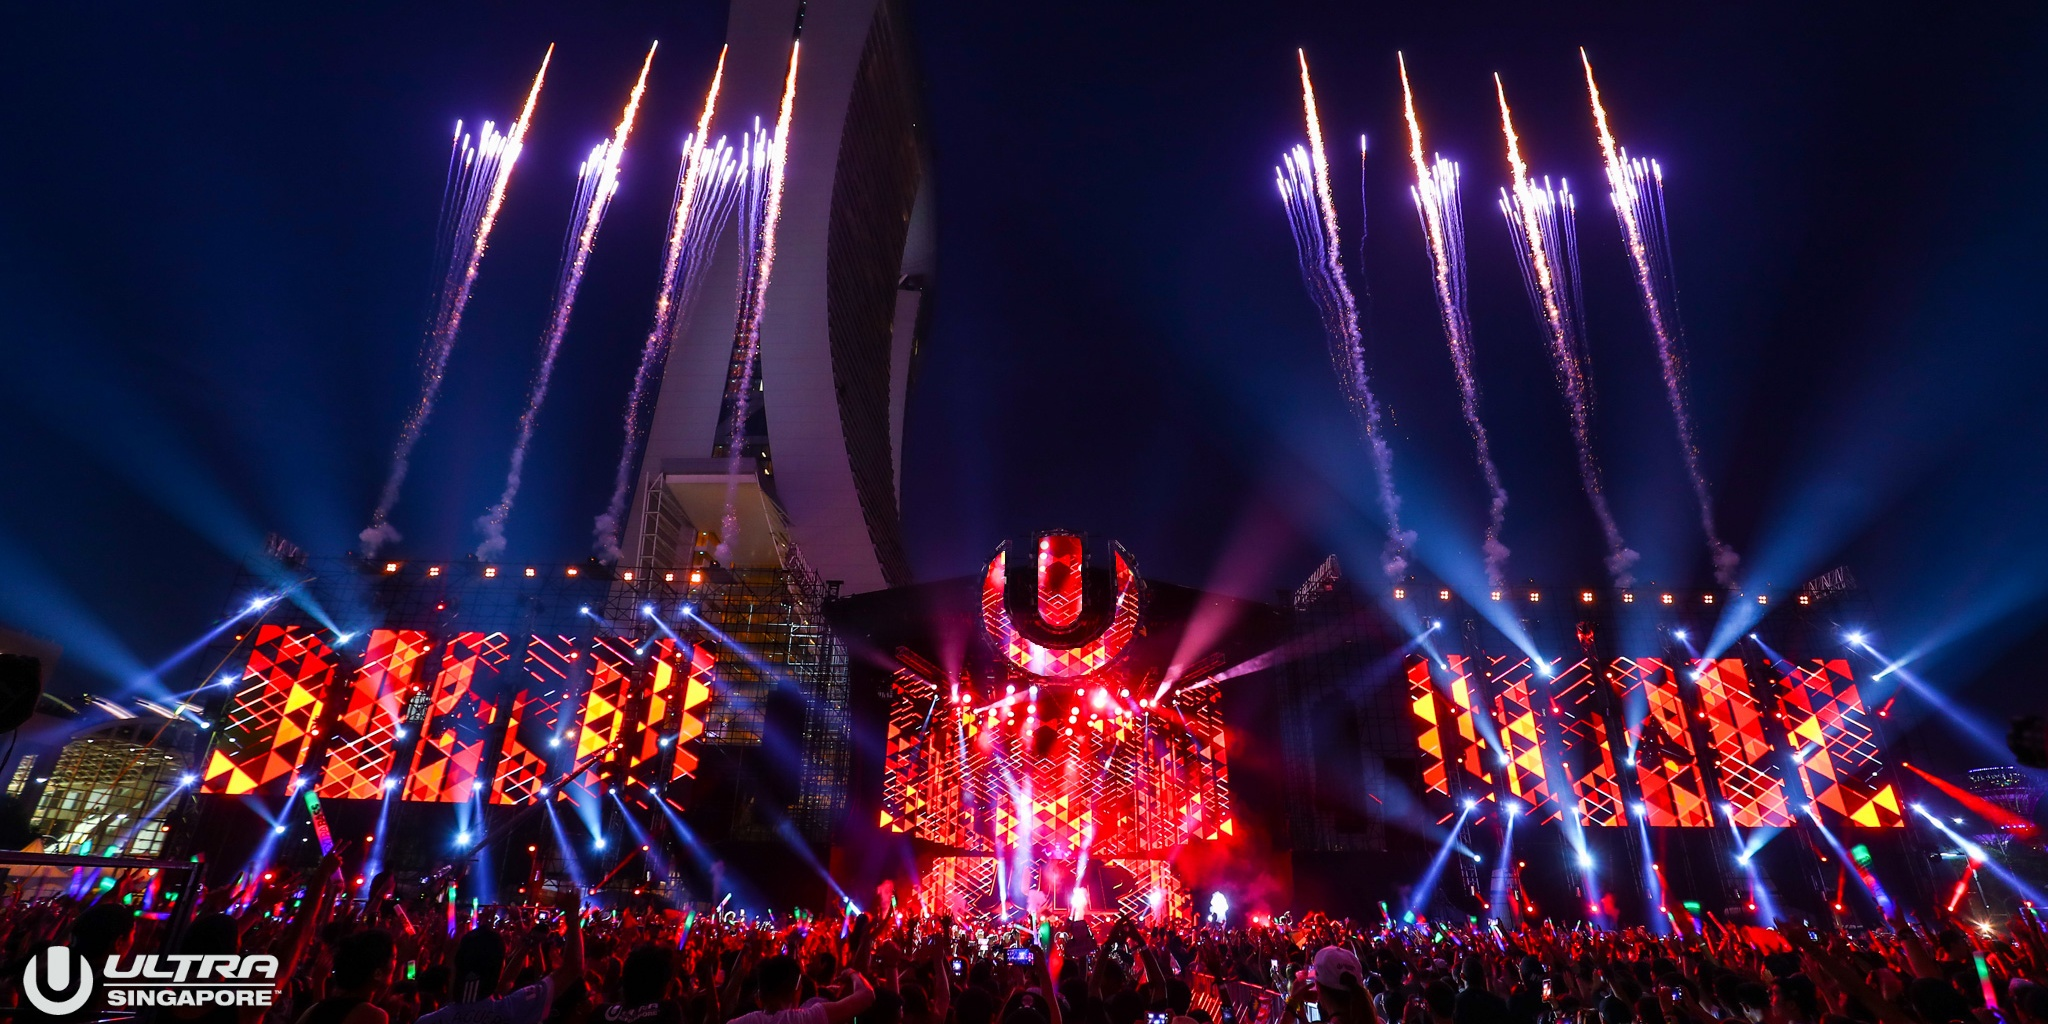 All you need to know about Ultra Singapore 2017